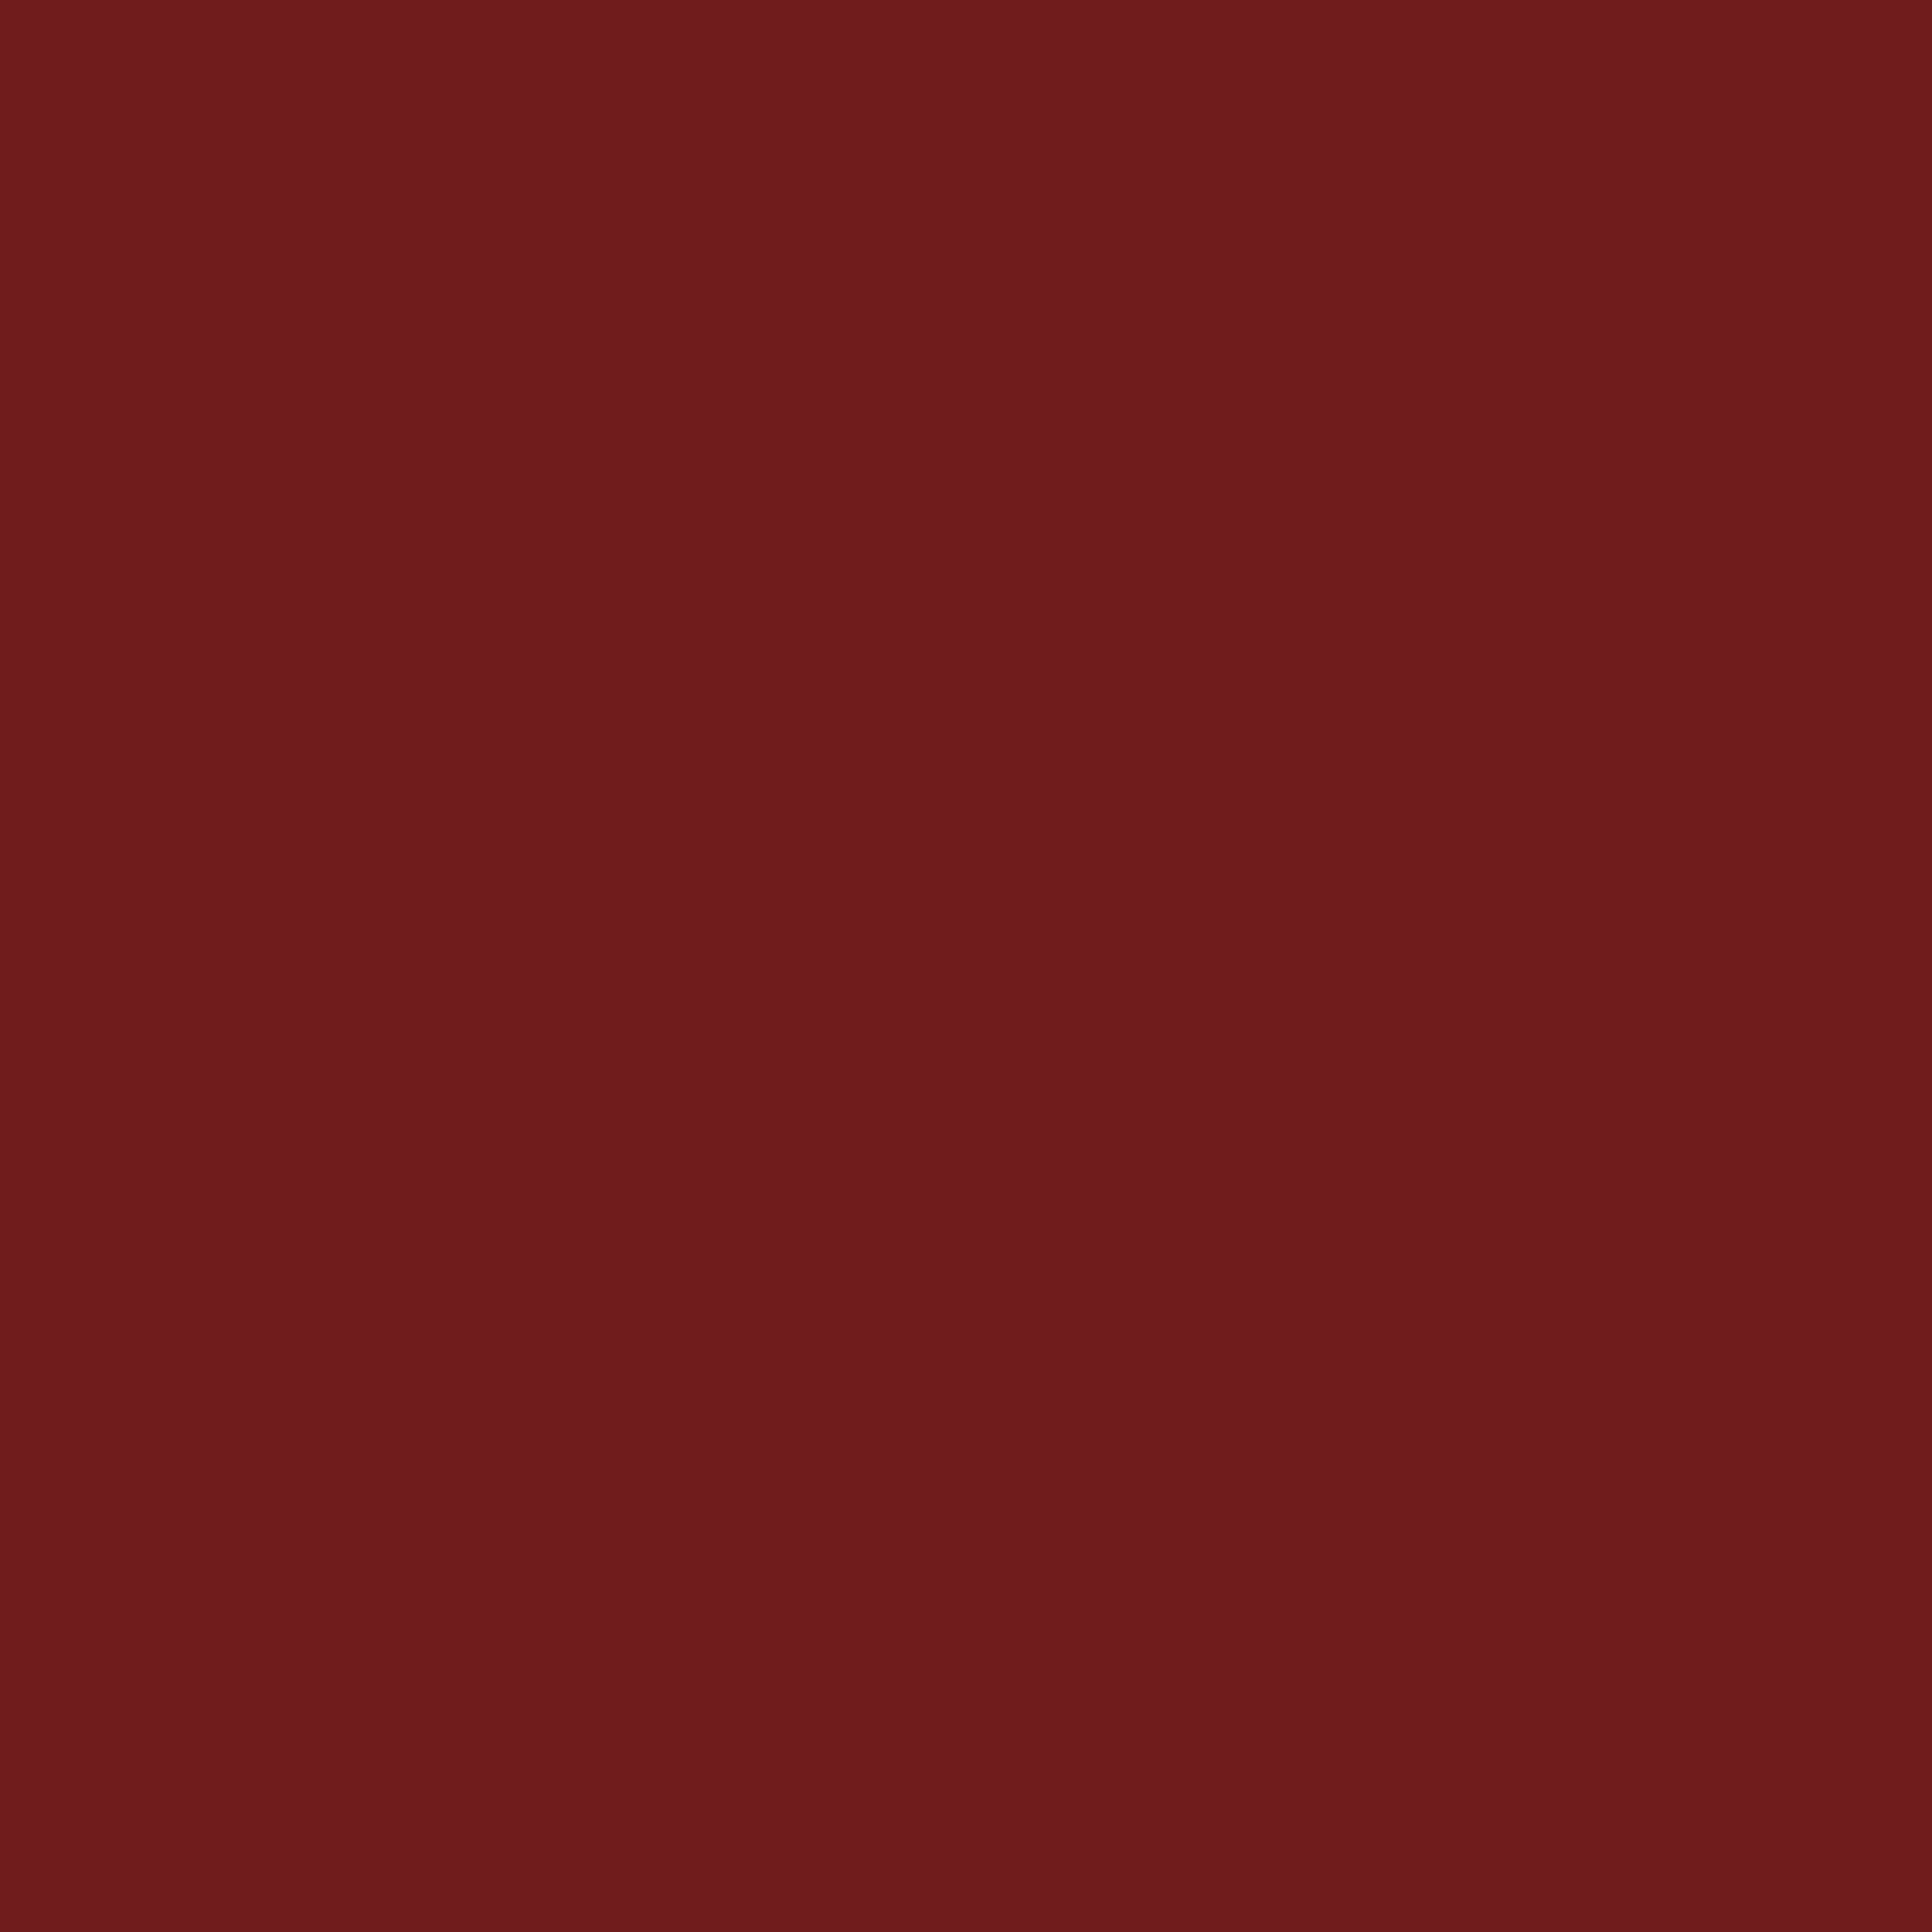 2048x2048 Persian Plum Solid Color Background